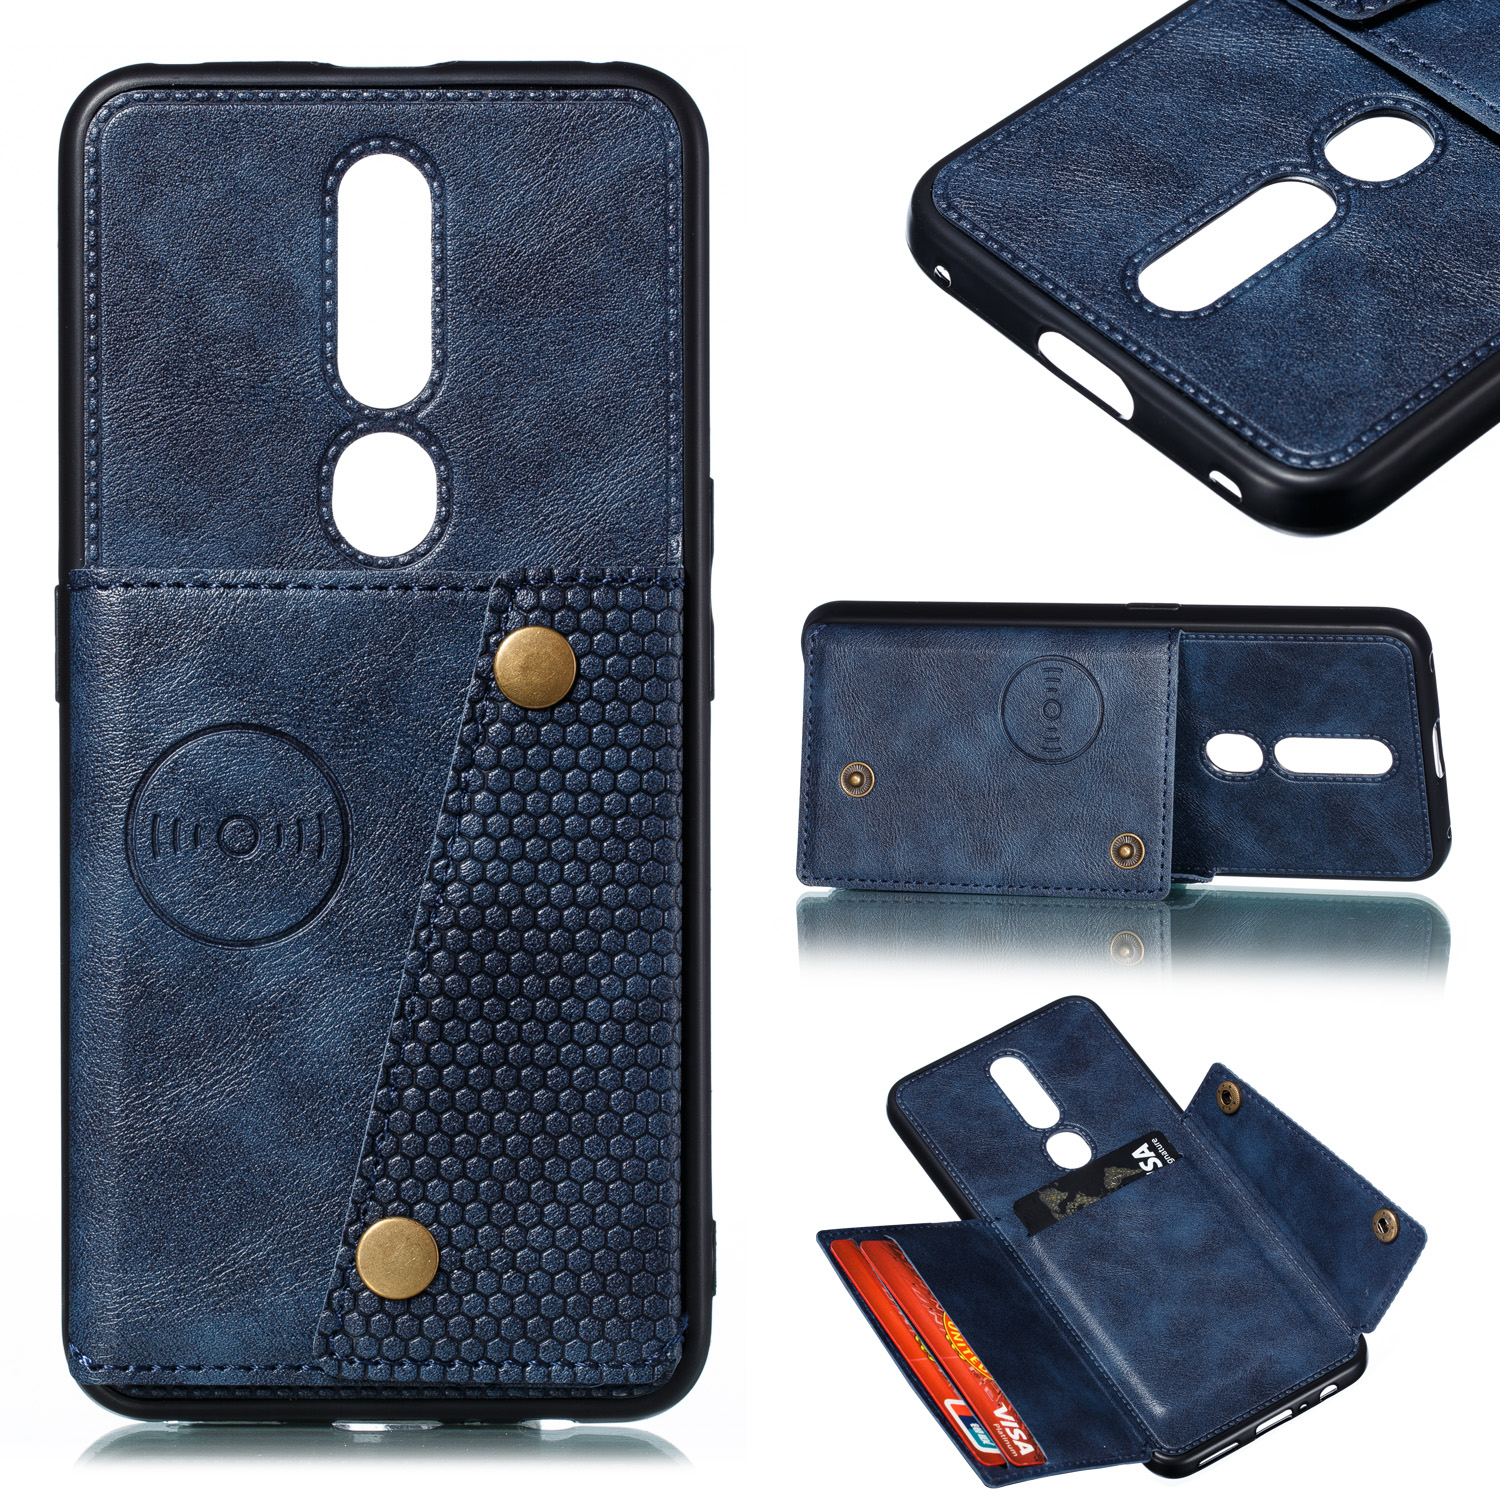 For OPPO F11 pro PU Leather Flip Stand Shockproof Cell Phone Cover Double Buckle Anti-dust Case With Card Slots Pocket blue